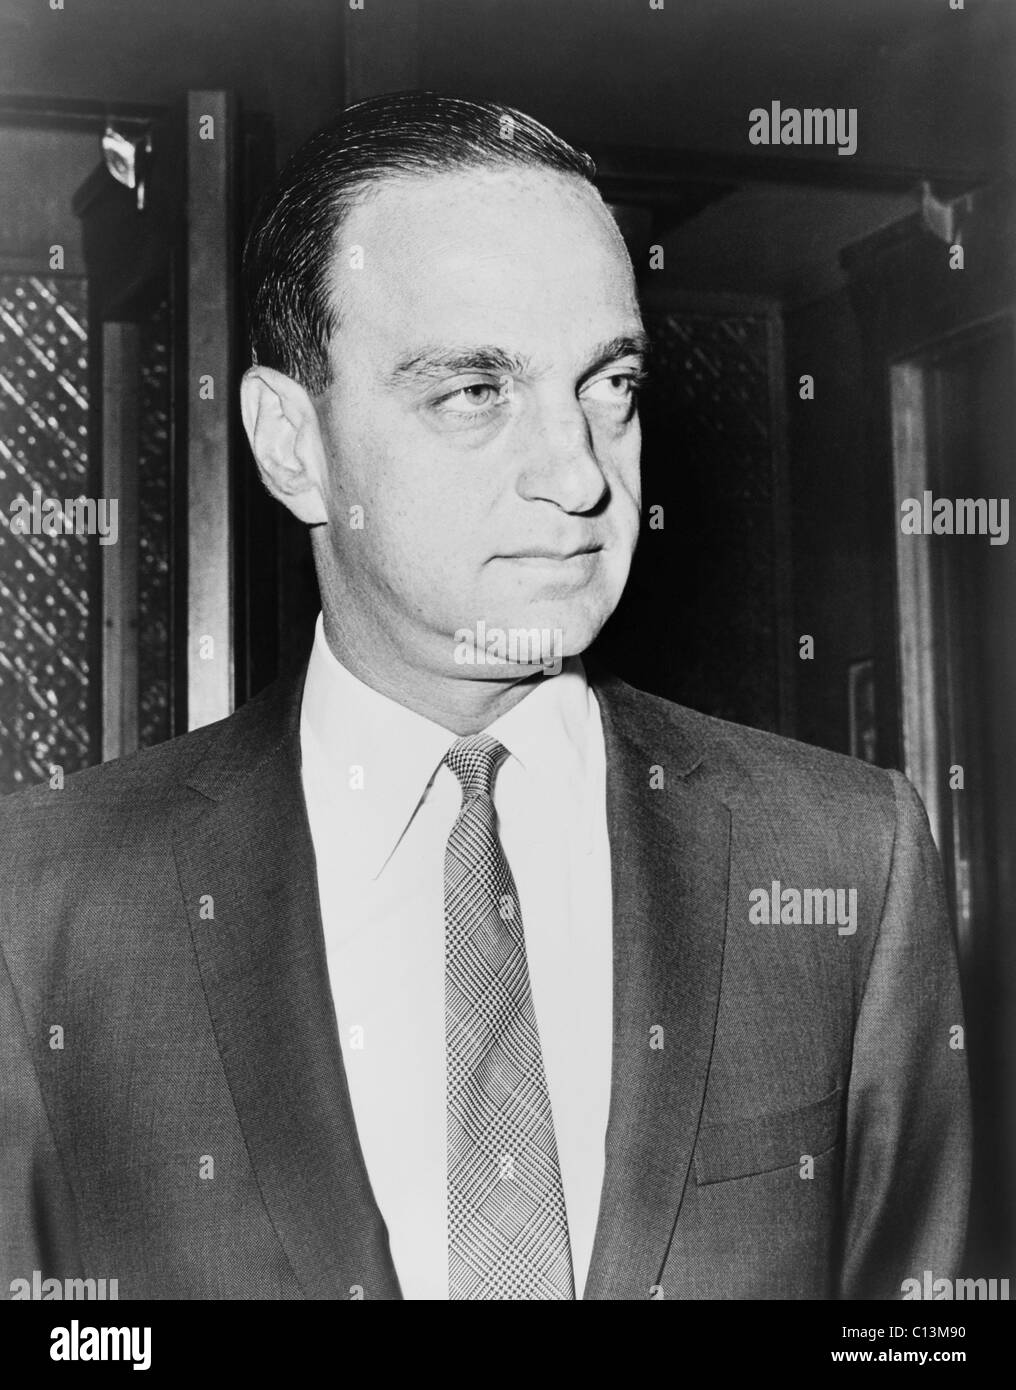 Roy M. Cohn 1927-1986 formerly an assistant to Senator McCarthy during his anti-Communist crusades created controversy - Stock Image